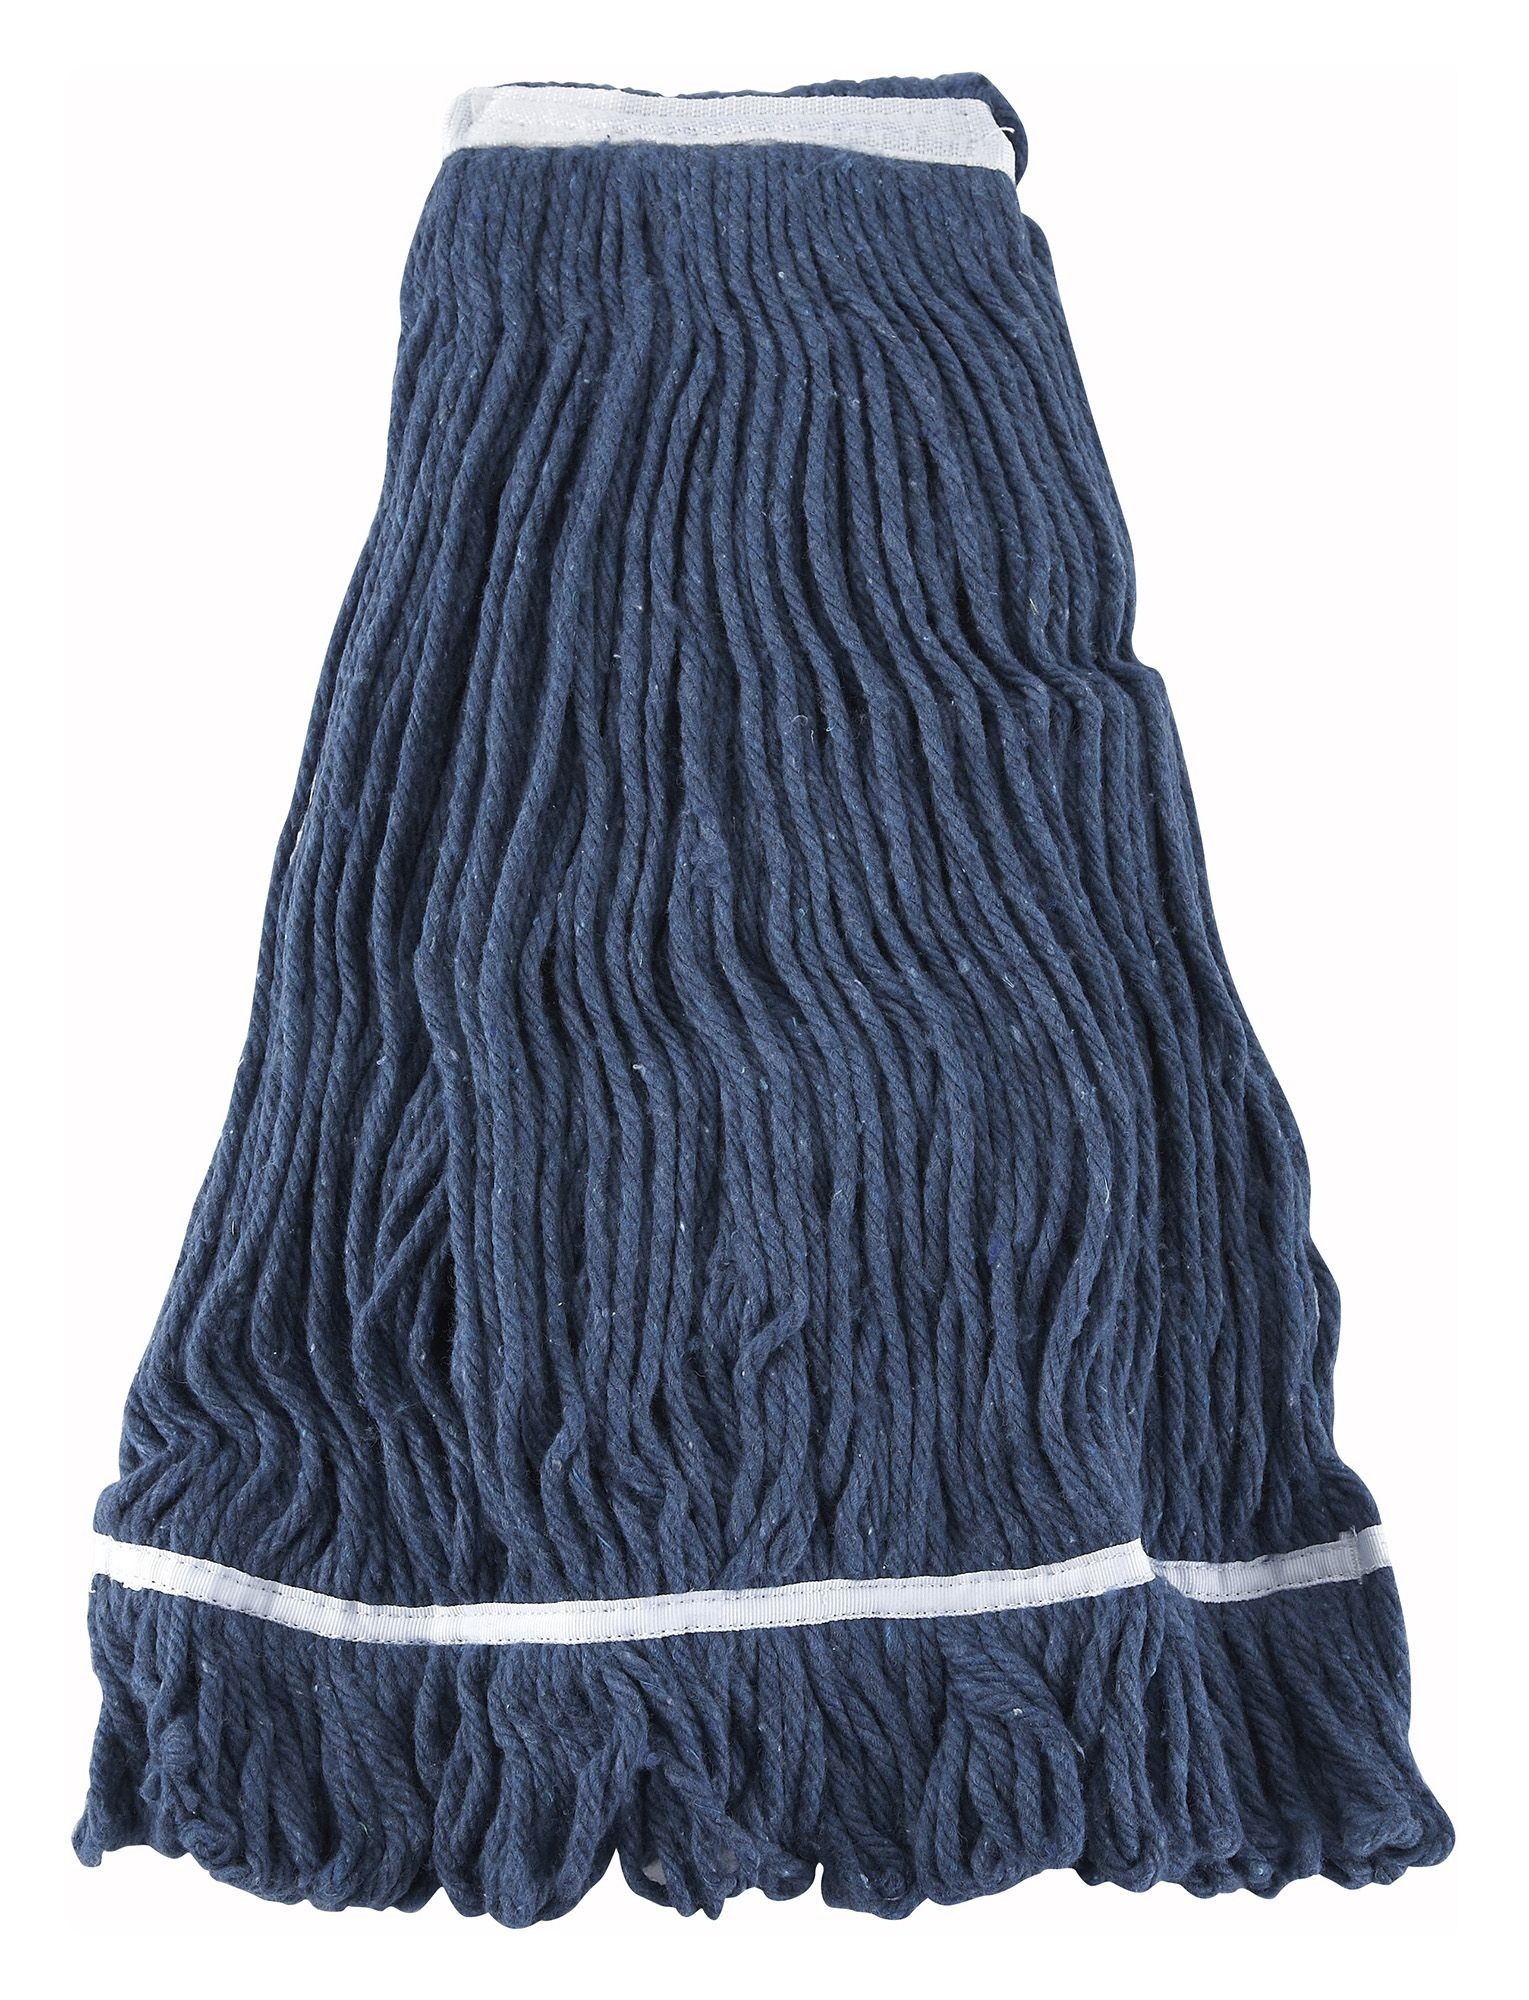 Winco MOP-32 Blue Yarn Looped-End Wet Mop Head 800g 32 oz.